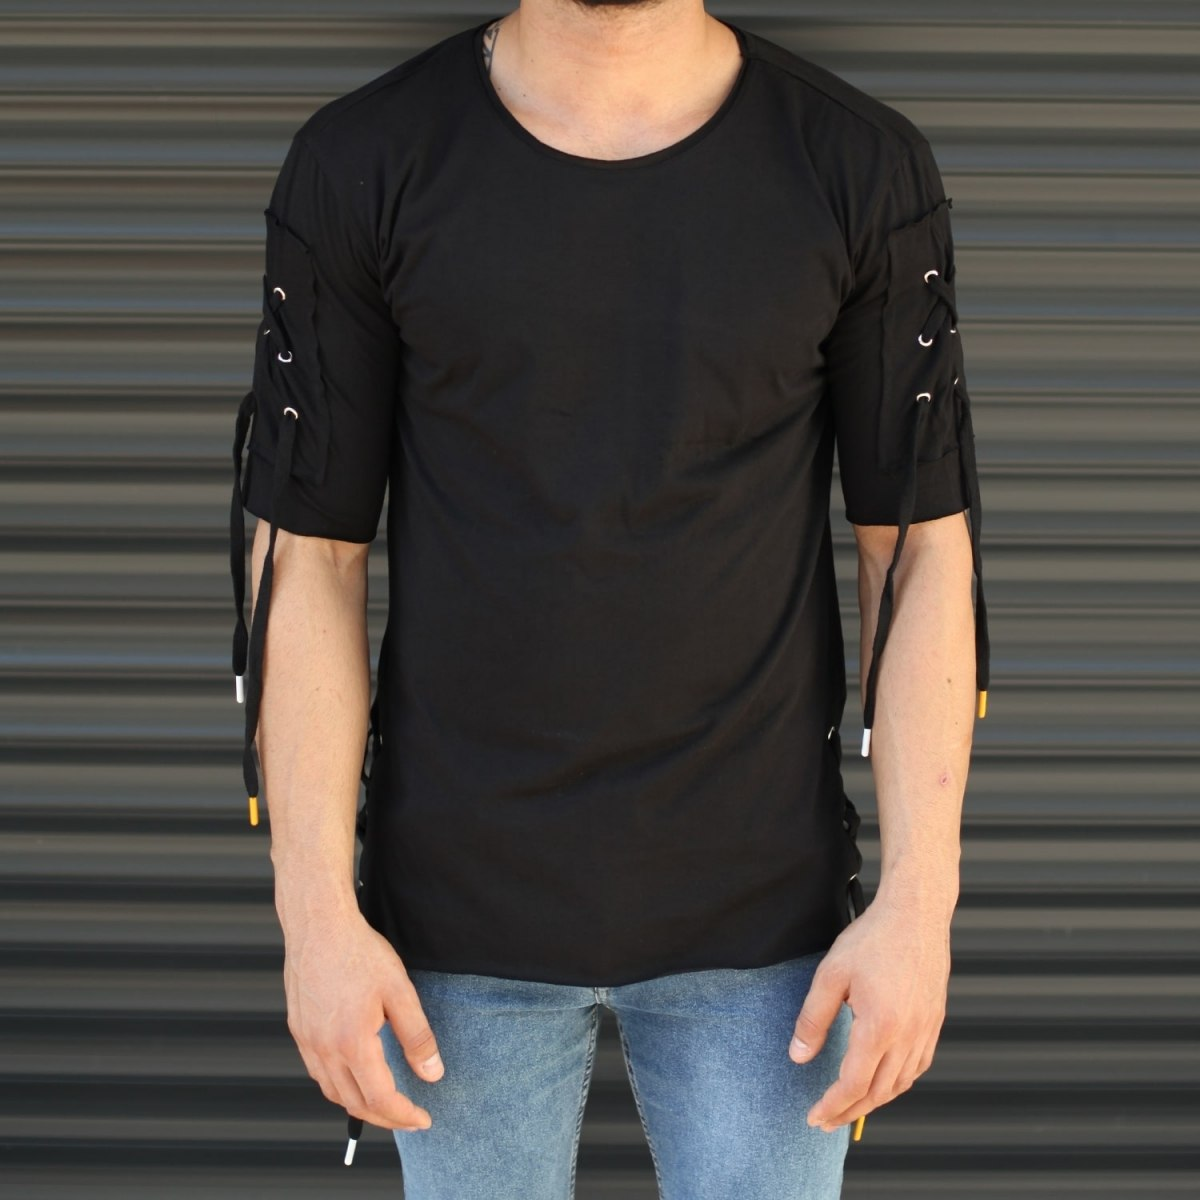 Men's Sleeves Drawstring Longline T-Shirt In Black Mv Premium Brand - 1